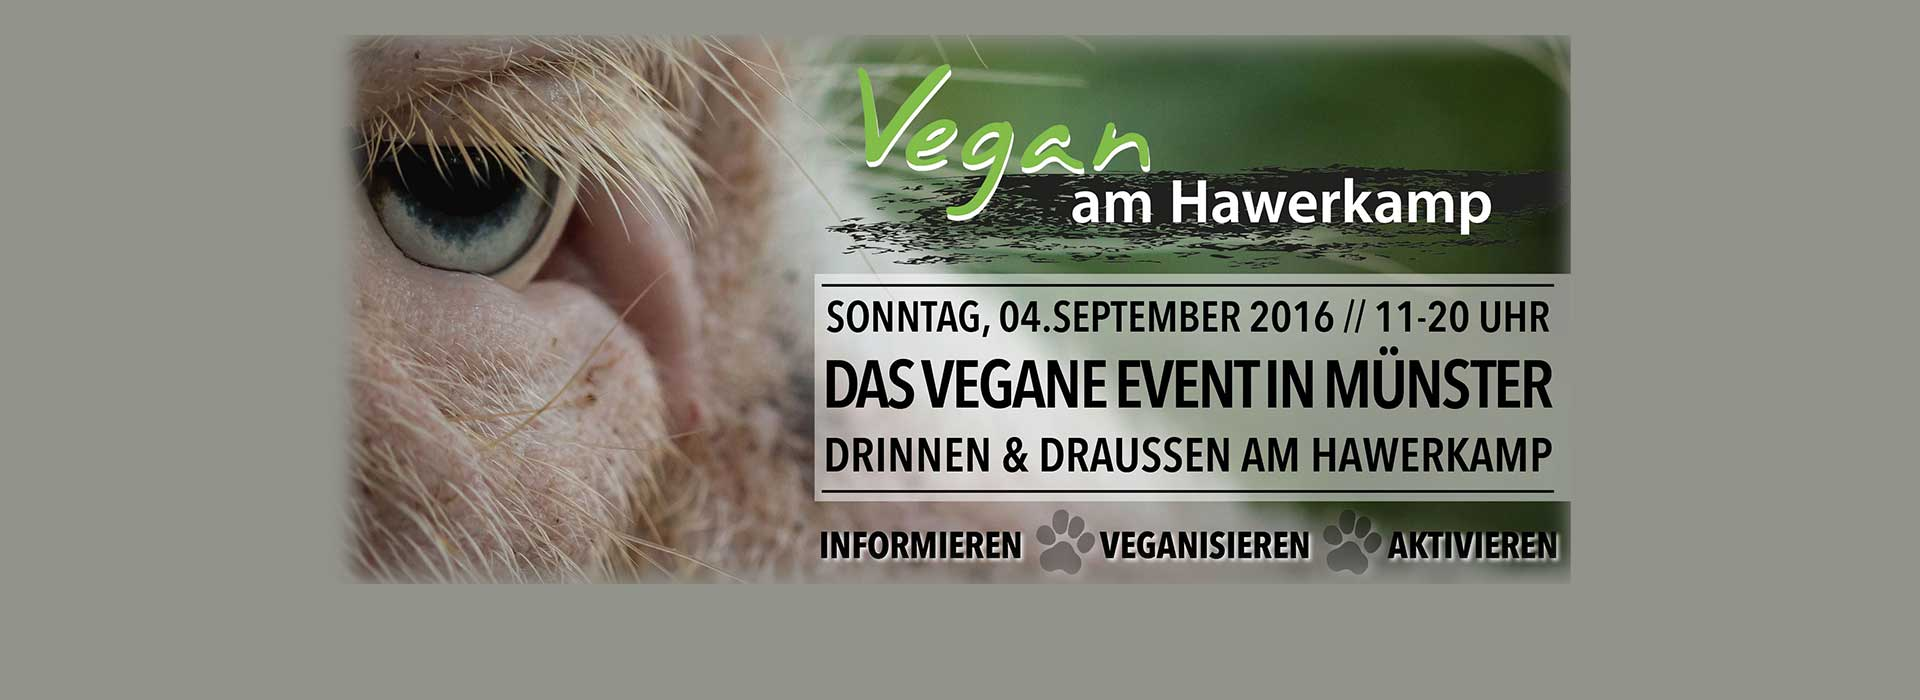 vegan-am-hawerkamp